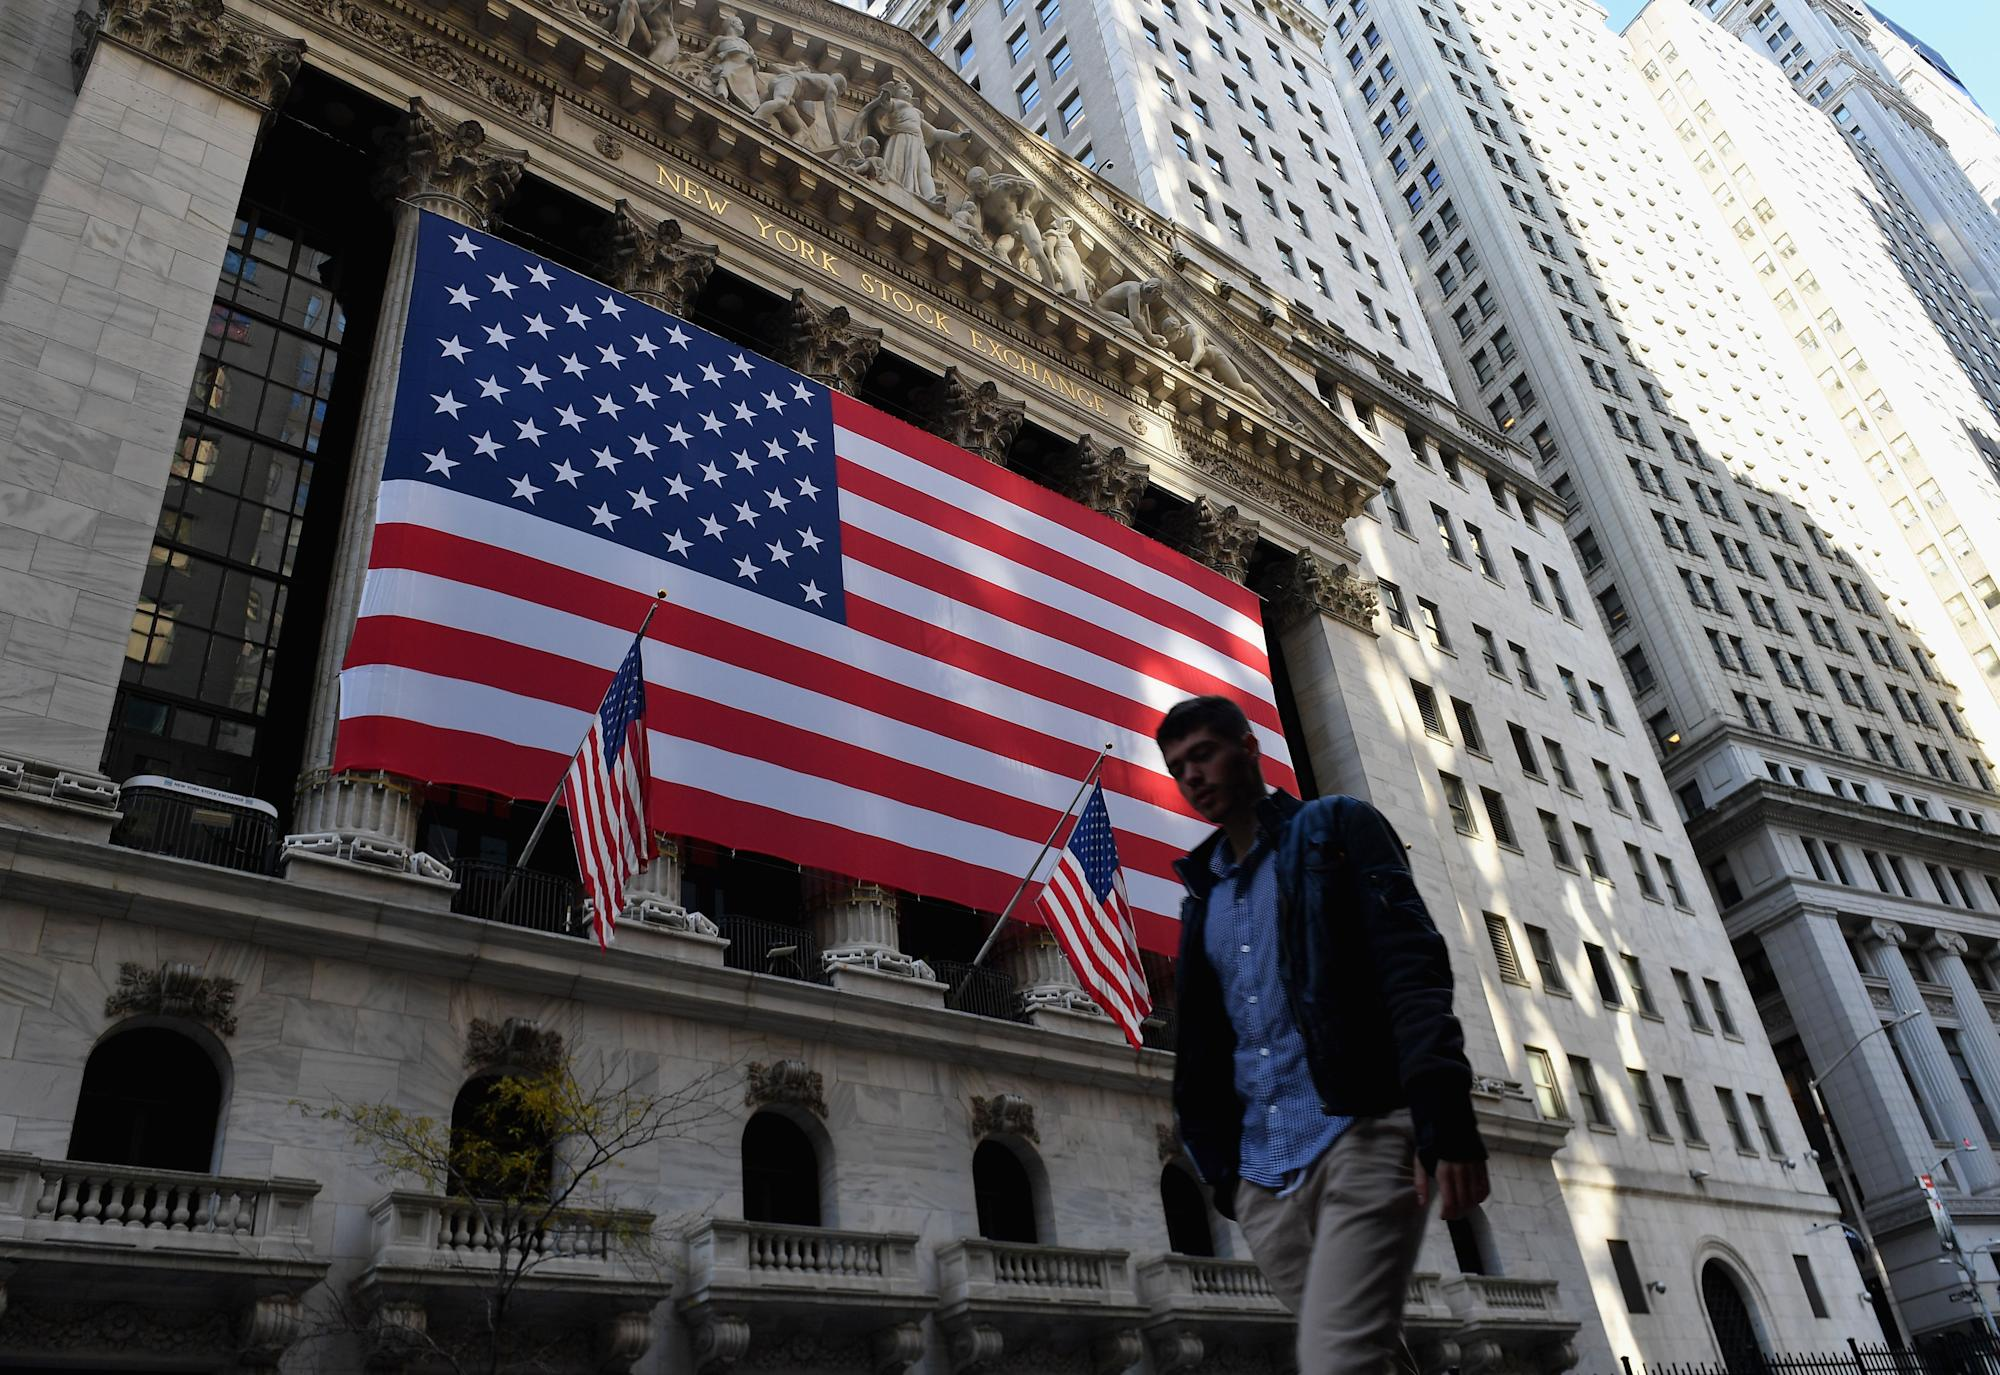 Stock market news live updates: Stocks edge lower after S&P 500, Dow s... image